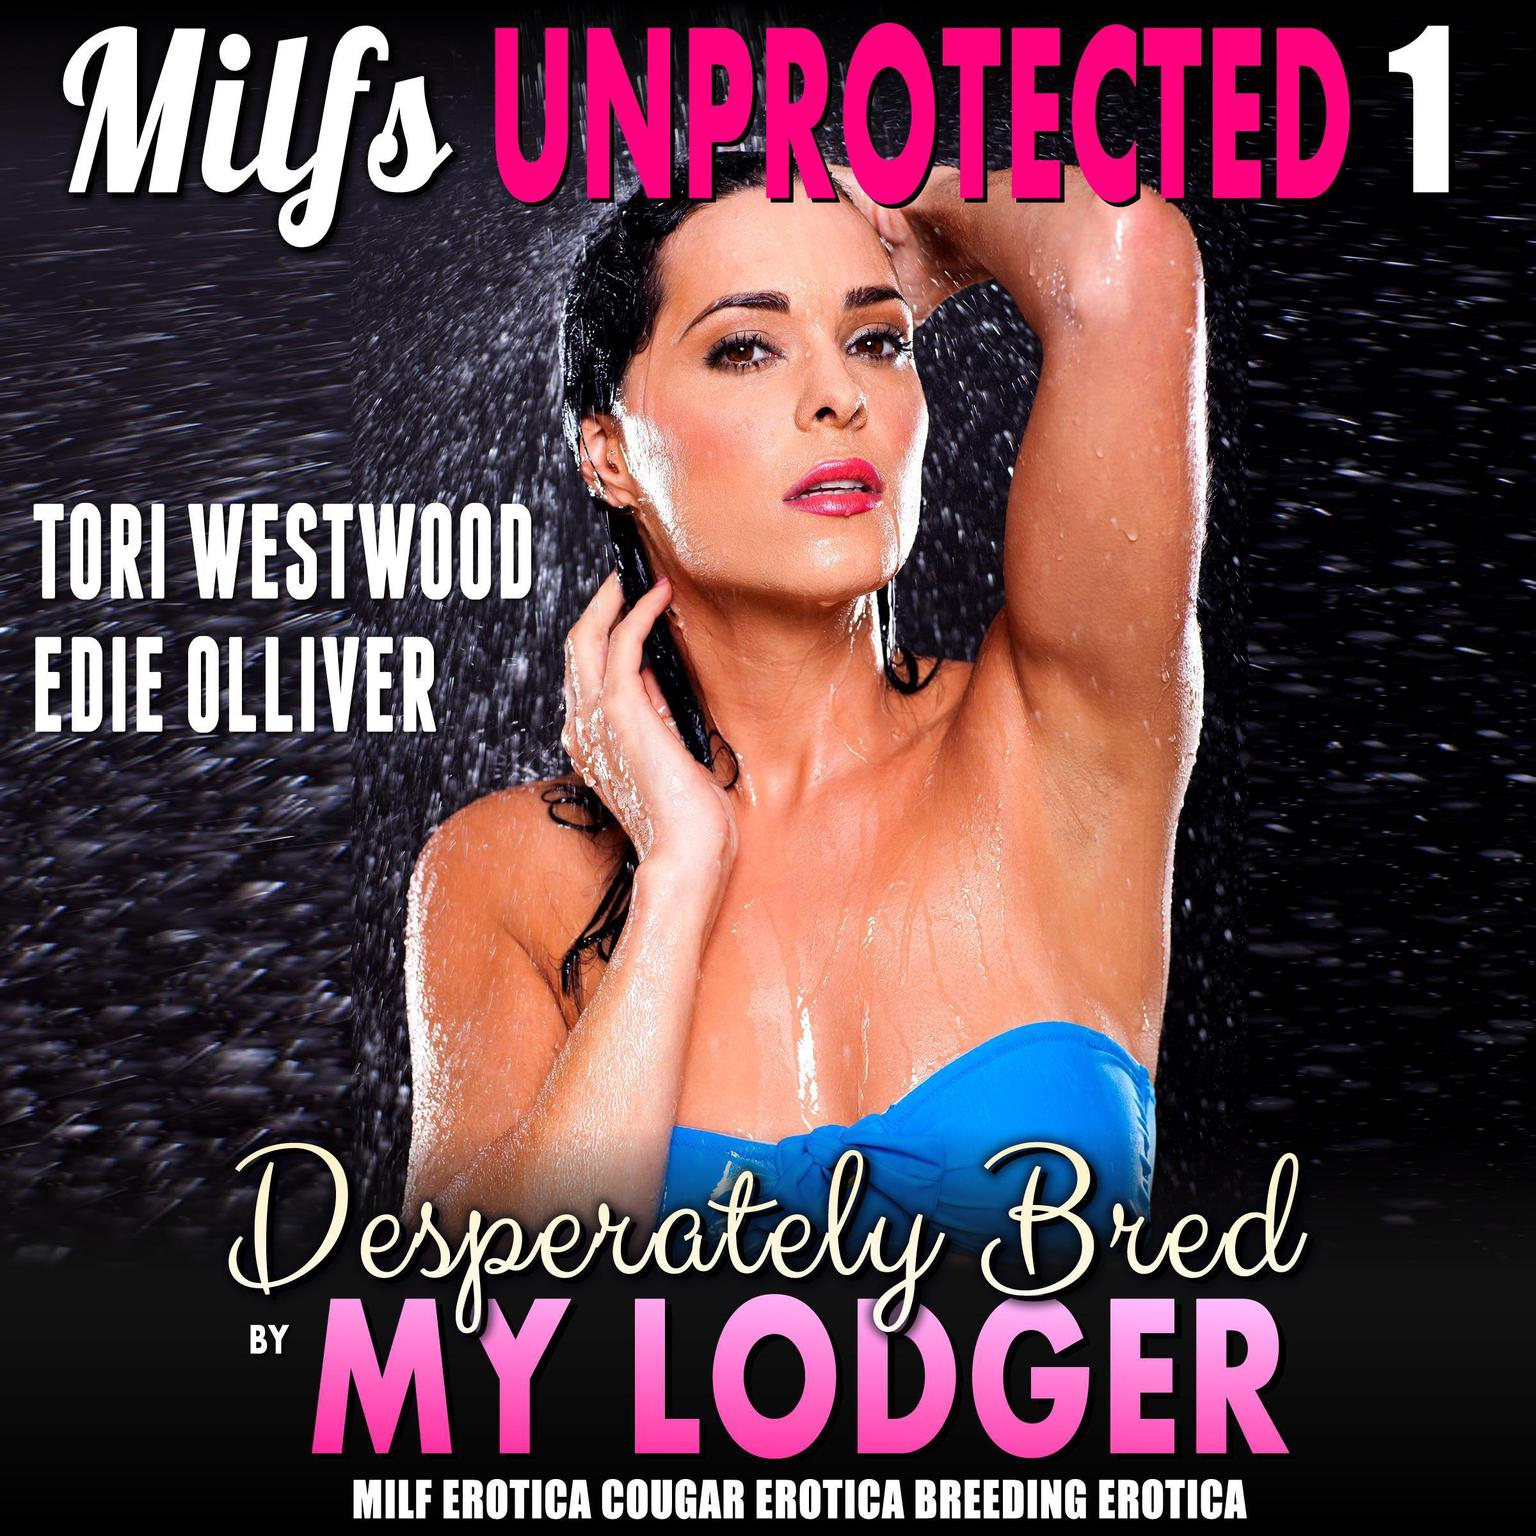 Desperately Bred By My Lodger : Milfs Unprotected 1 (MILF Erotica Cougar Erotica Breeding Erotica) Audiobook, by Tori Westwood